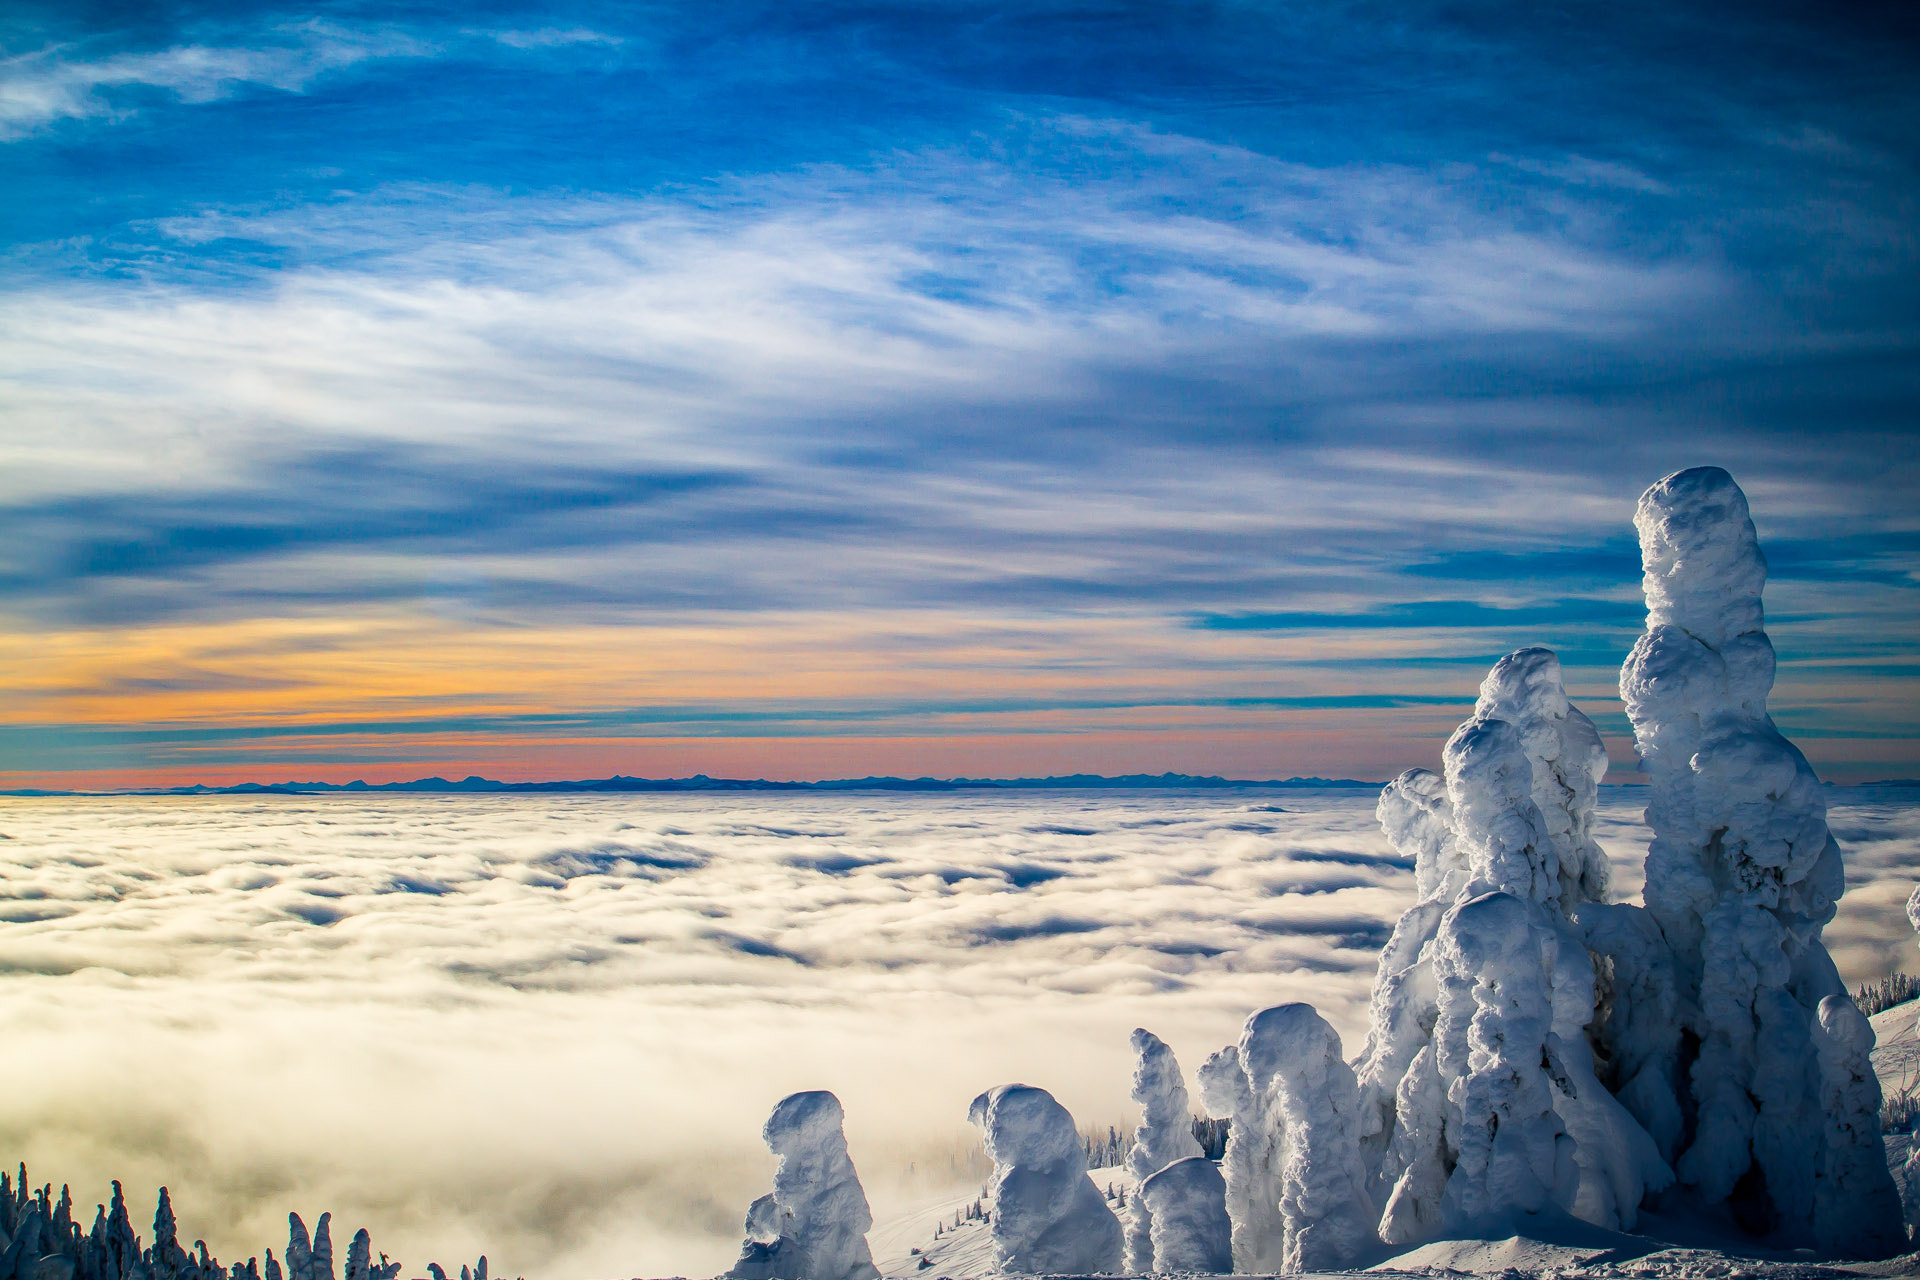 Photograph Sea of Clouds by Ben J  on 500px